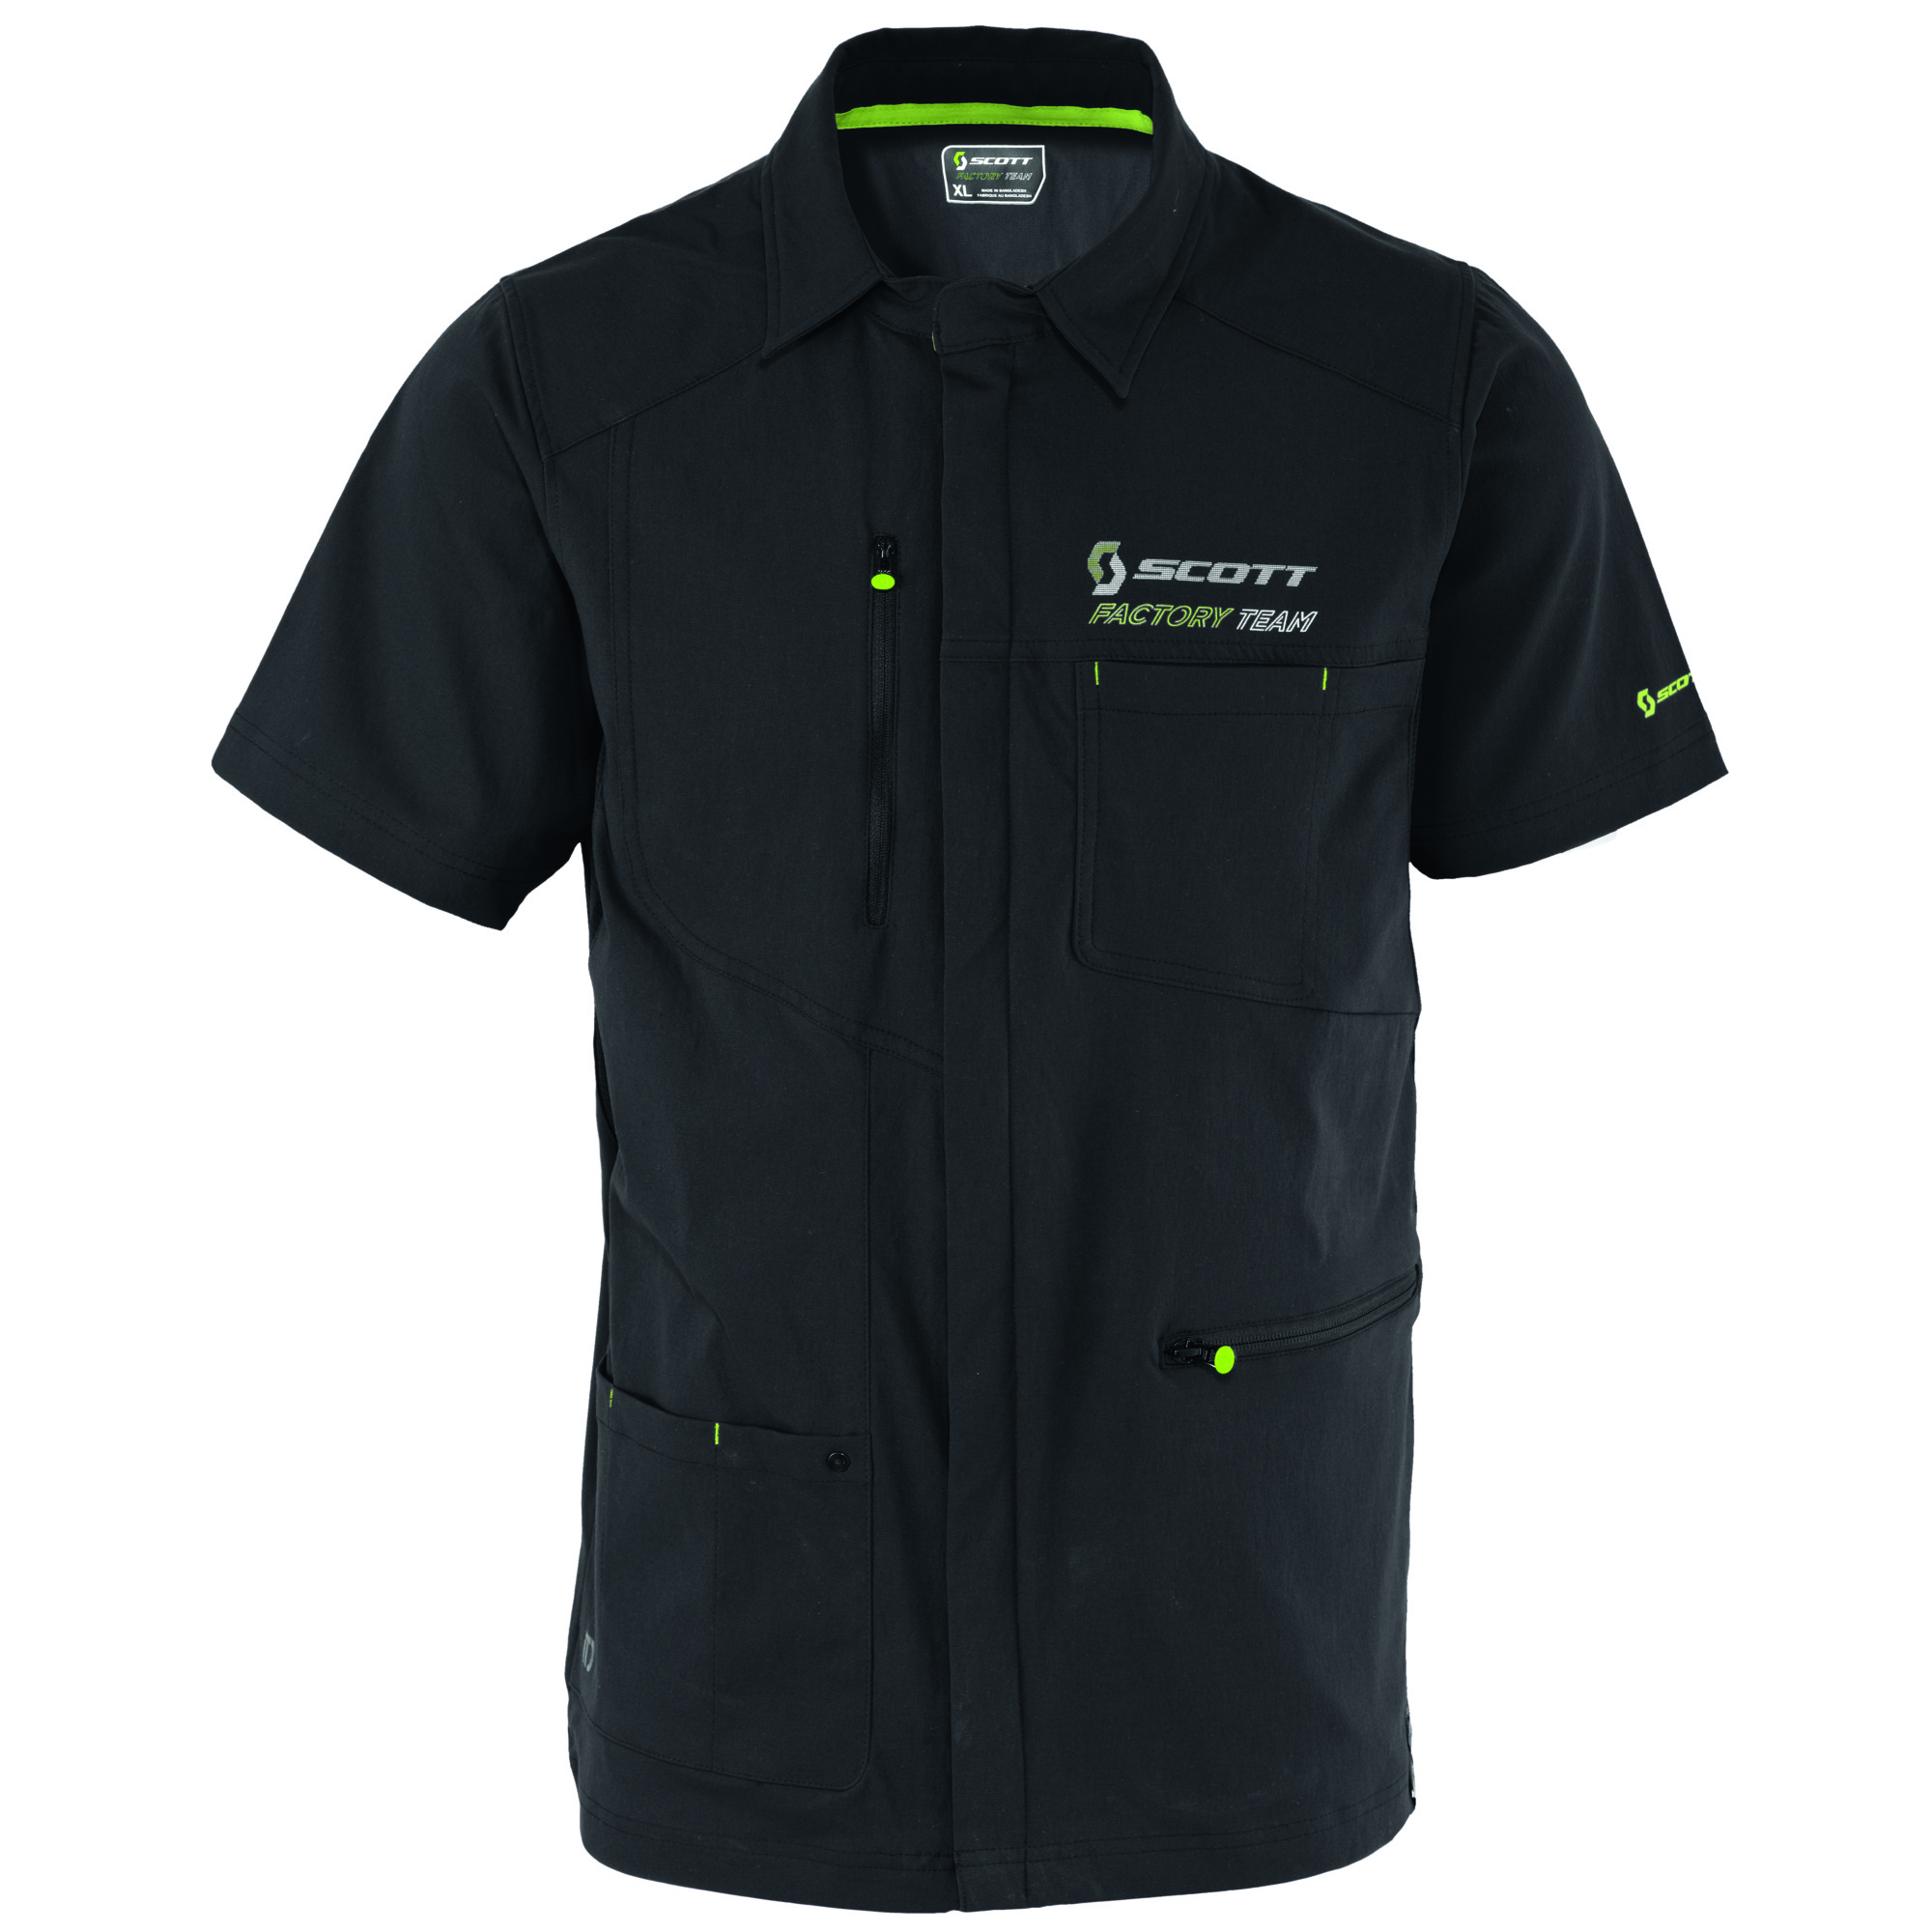 SCOTT FACTORY TEAM S/SL ZIP SHIRT